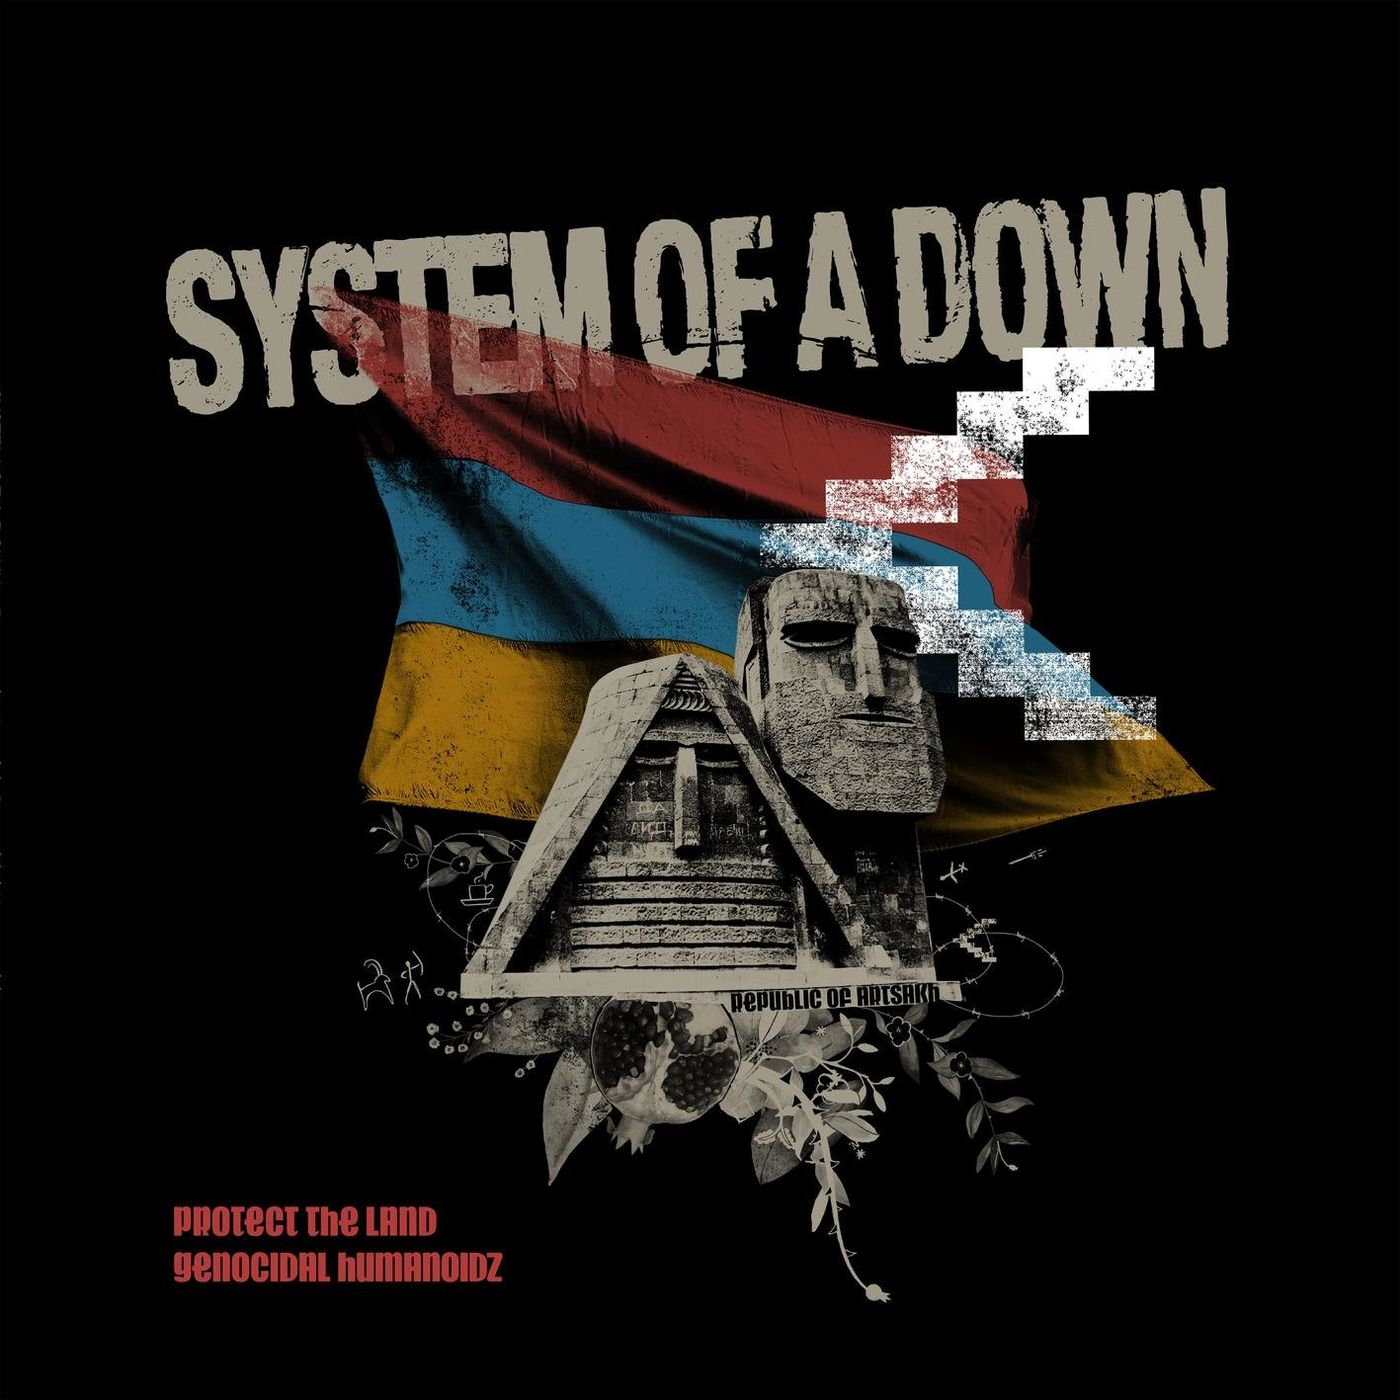 System of a Down - Protect The Land / Genocidal Humanoidz [maxi-single] (2020)